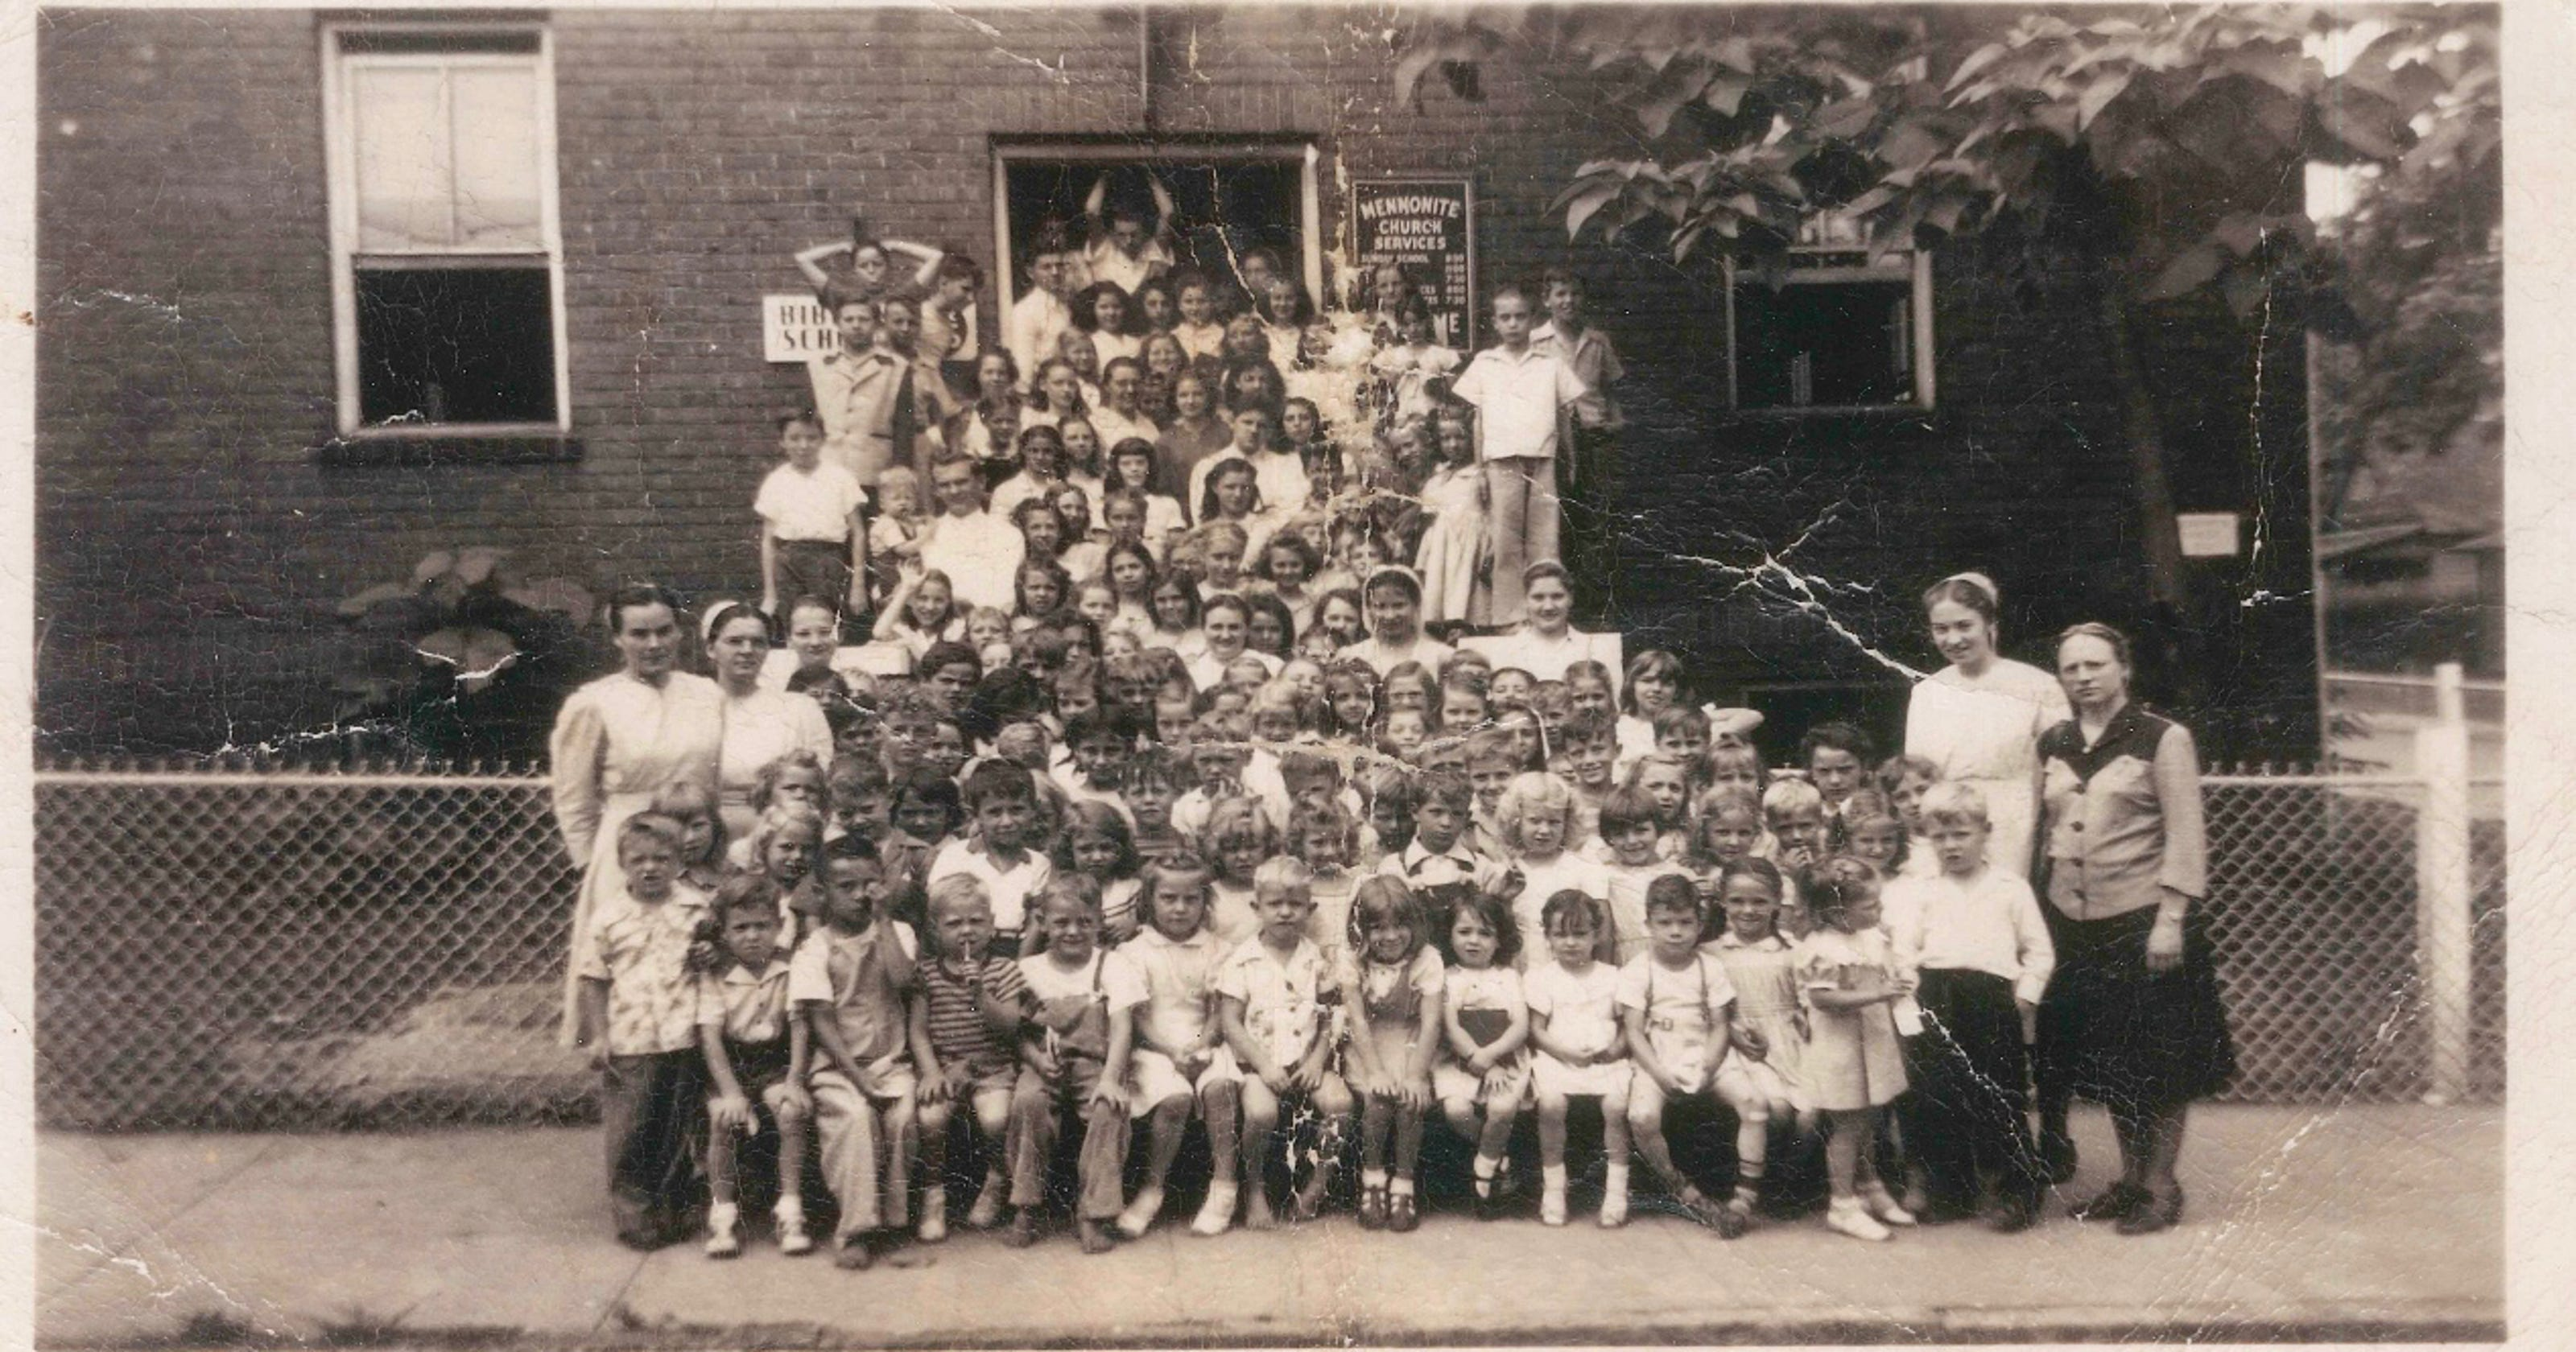 Knoxville Mennonite Church prepares for 100-year anniversary